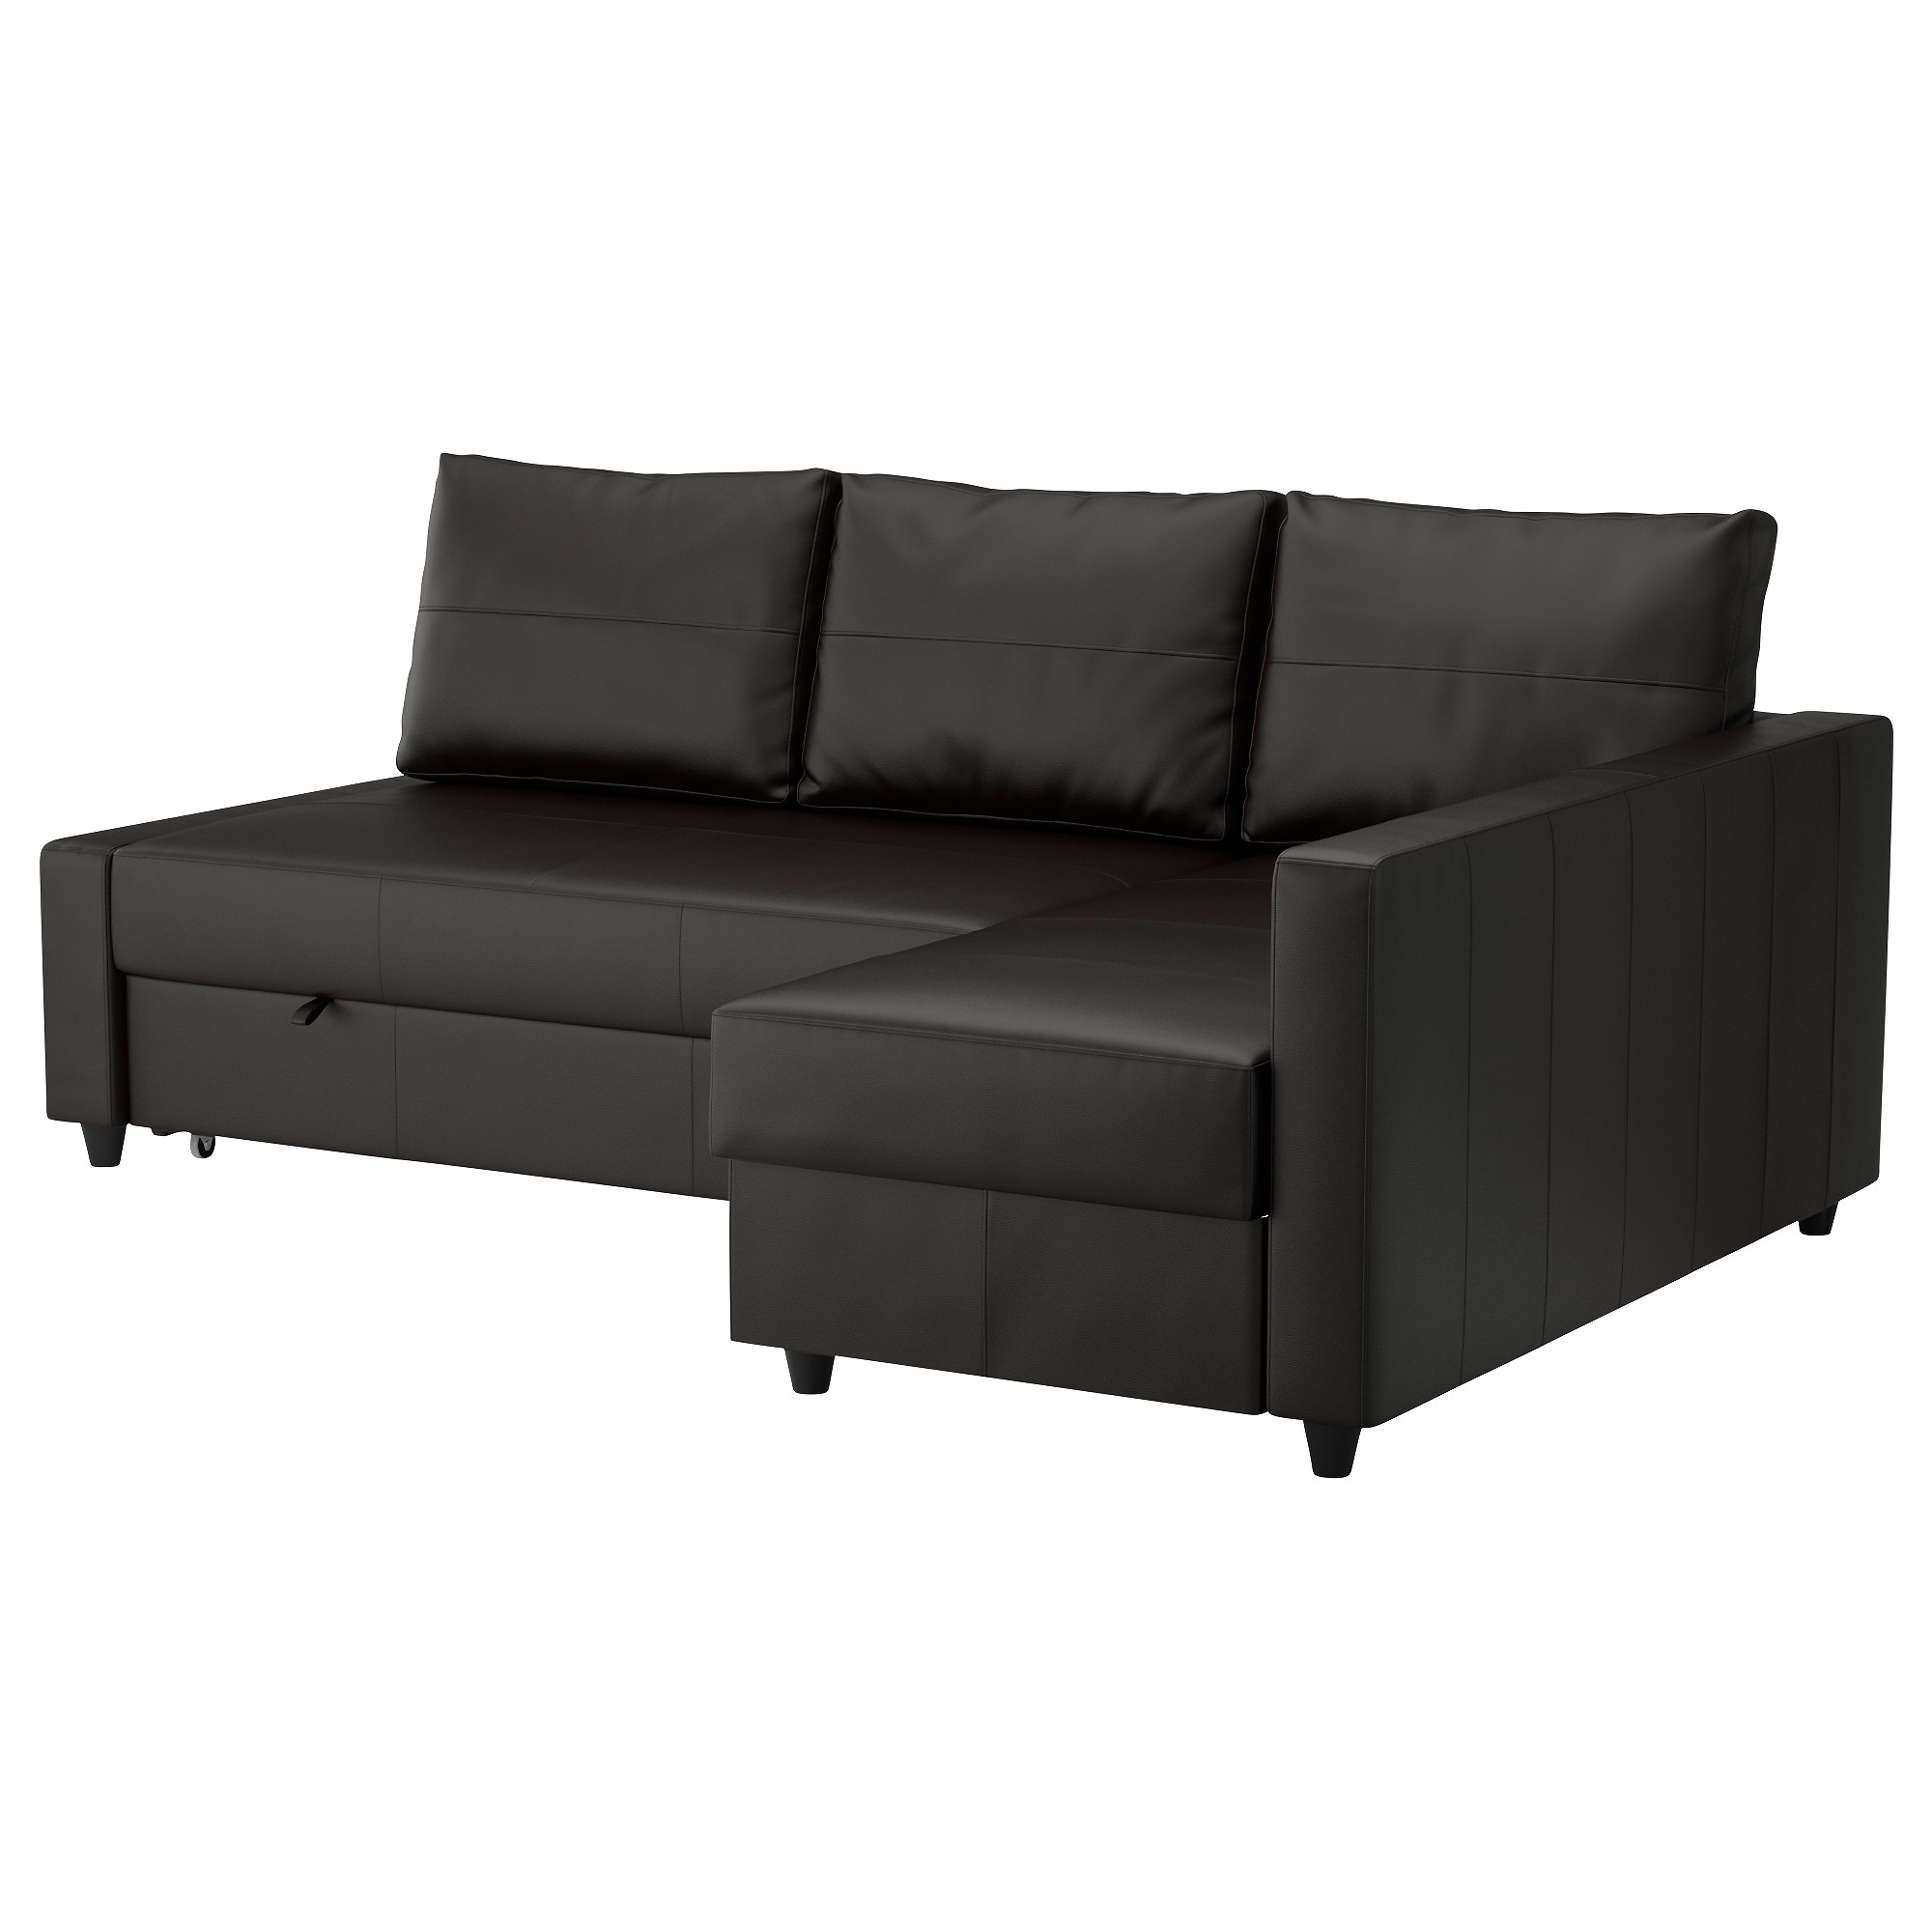 Beau IKEA FRIHETEN Sleeper Sectional,3 Seat W/storage